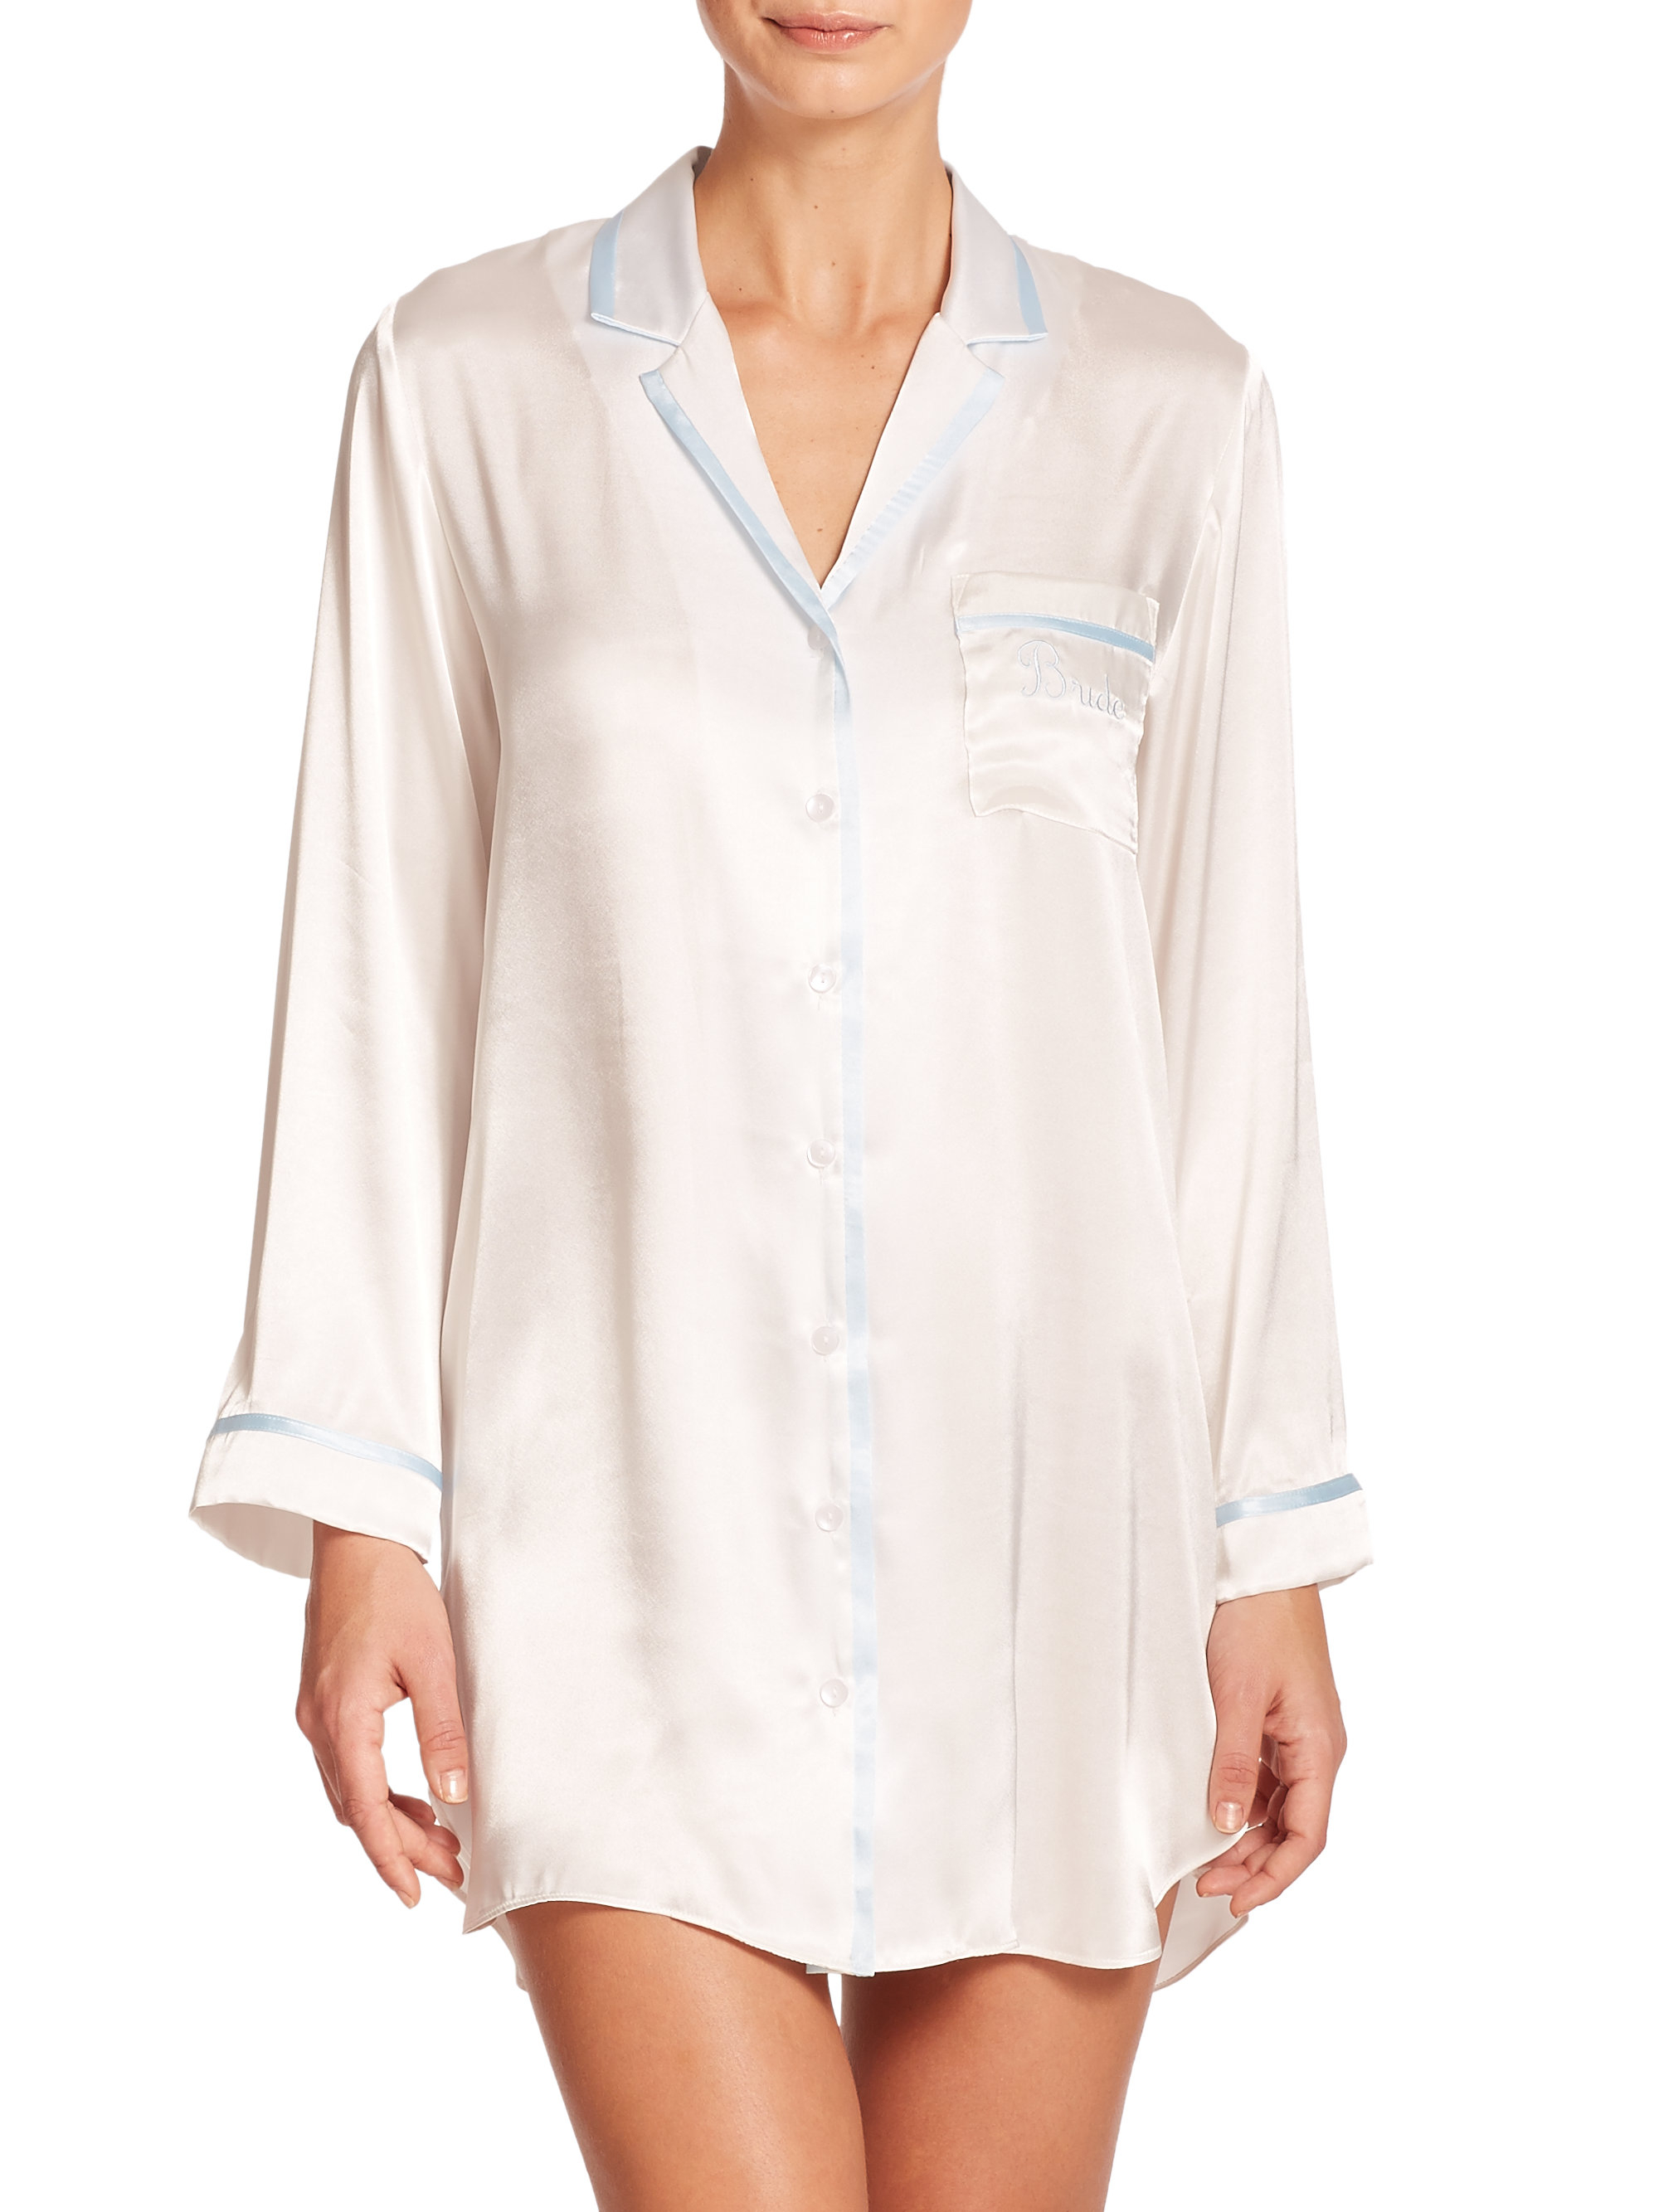 Women's Sleep Shirts. invalid category id. Women's Sleep Shirts. Showing 40 of results that match your query. Search Product Result. Product - George. Product Image. Price. Product - Laura Scott Women Gray Satin Trim Pajamas Lightweight Short .